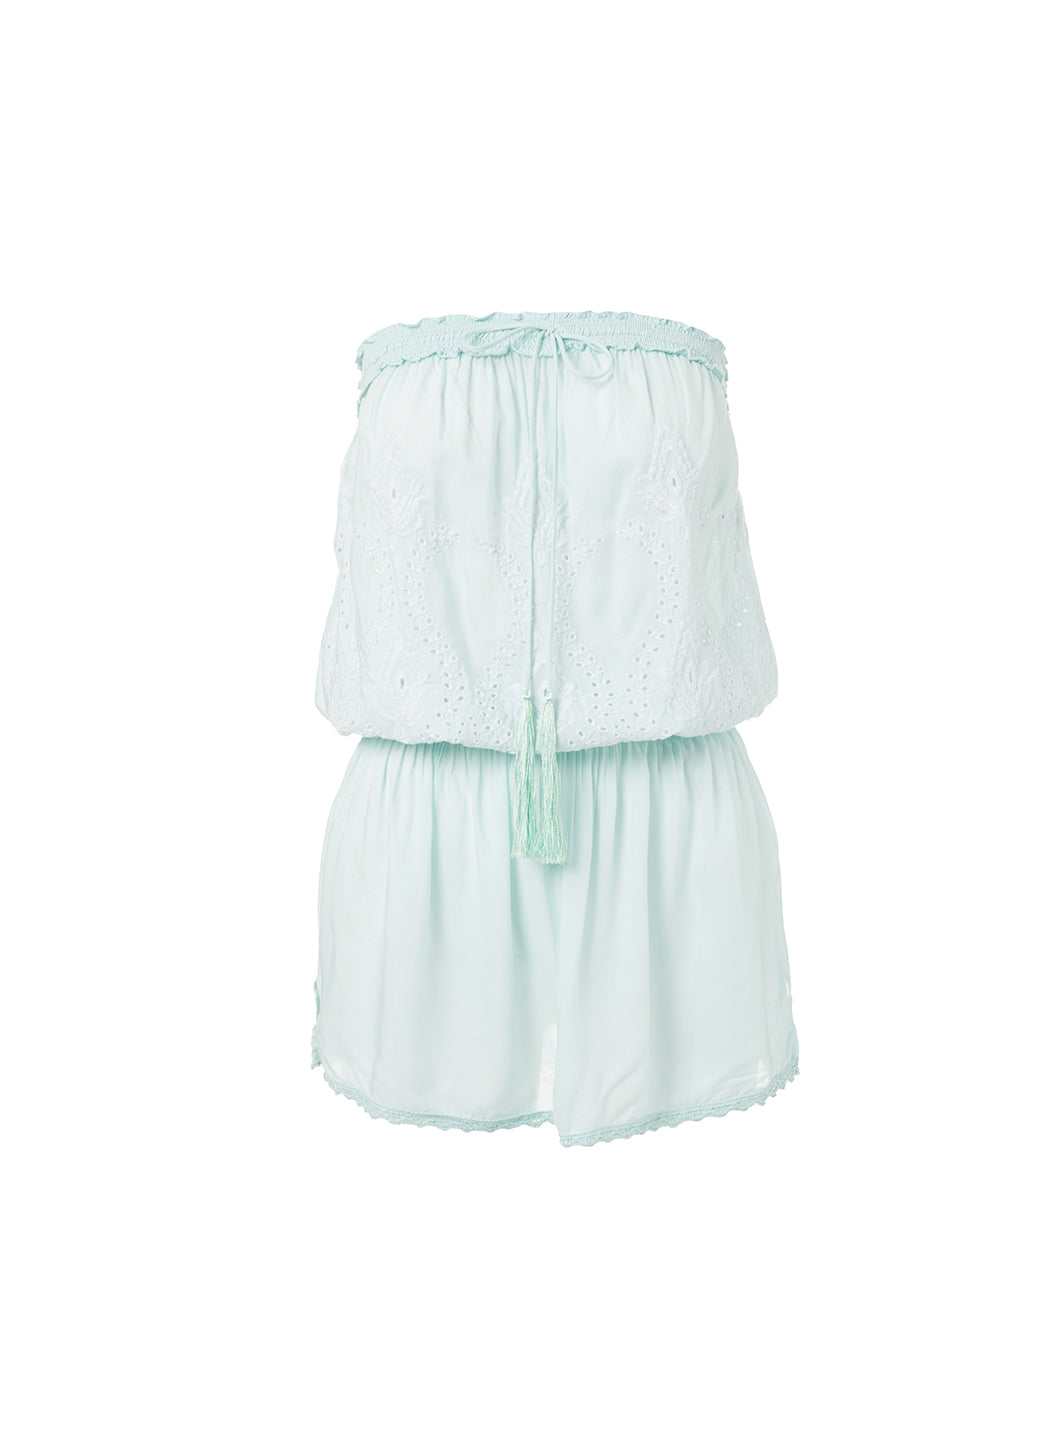 Fruley Mint Bandeau Embroidered Short Beach Dress